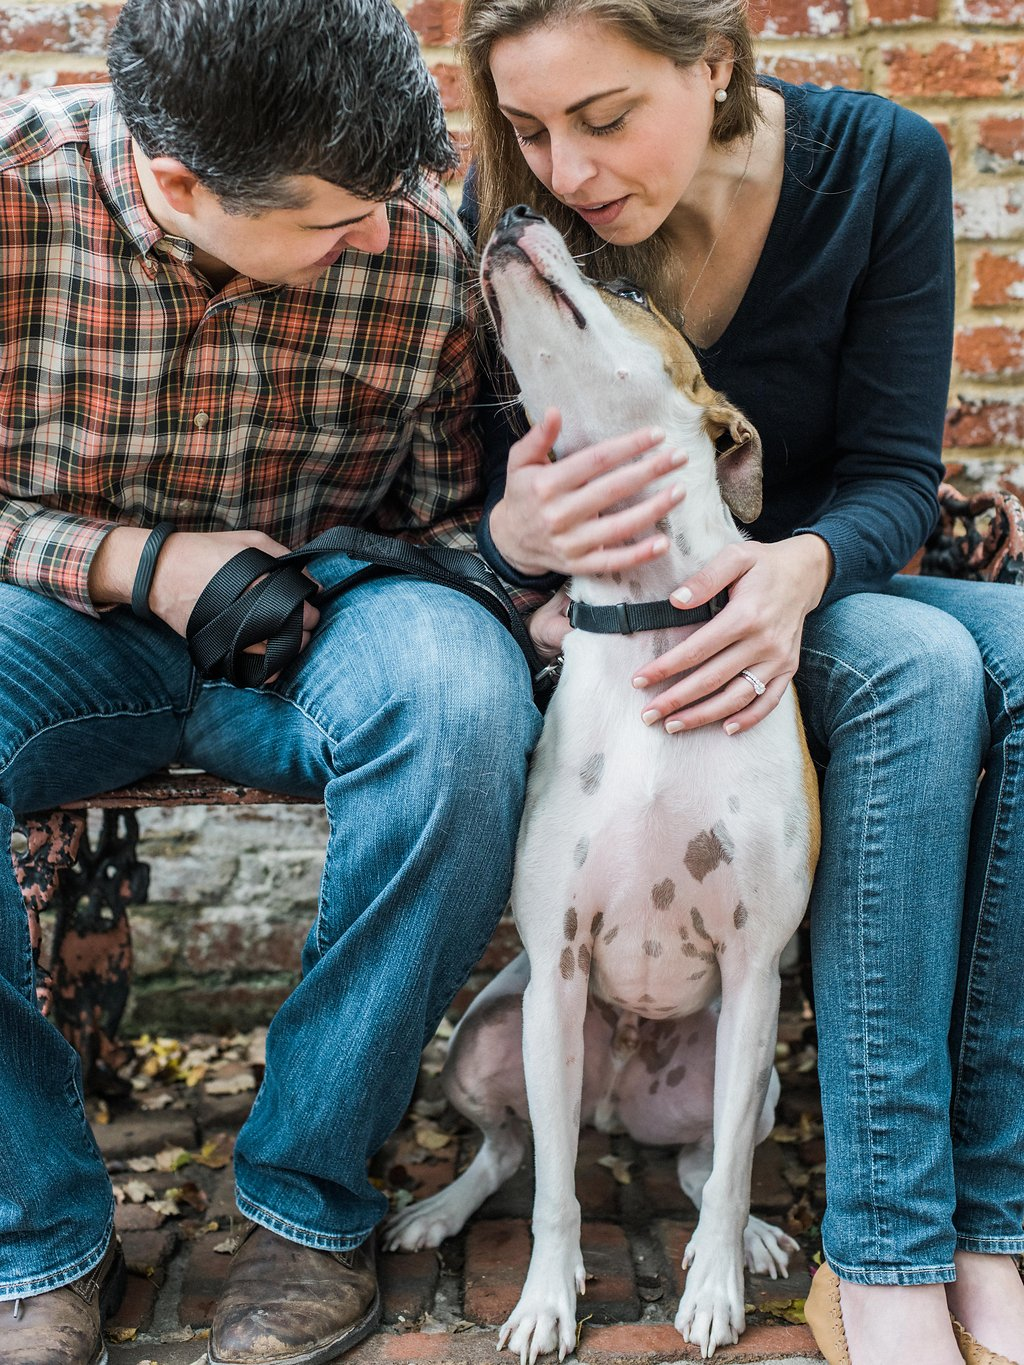 fall anniversary session in georgetown washington dc fine art photographer lissa ryan photography with puppy dog